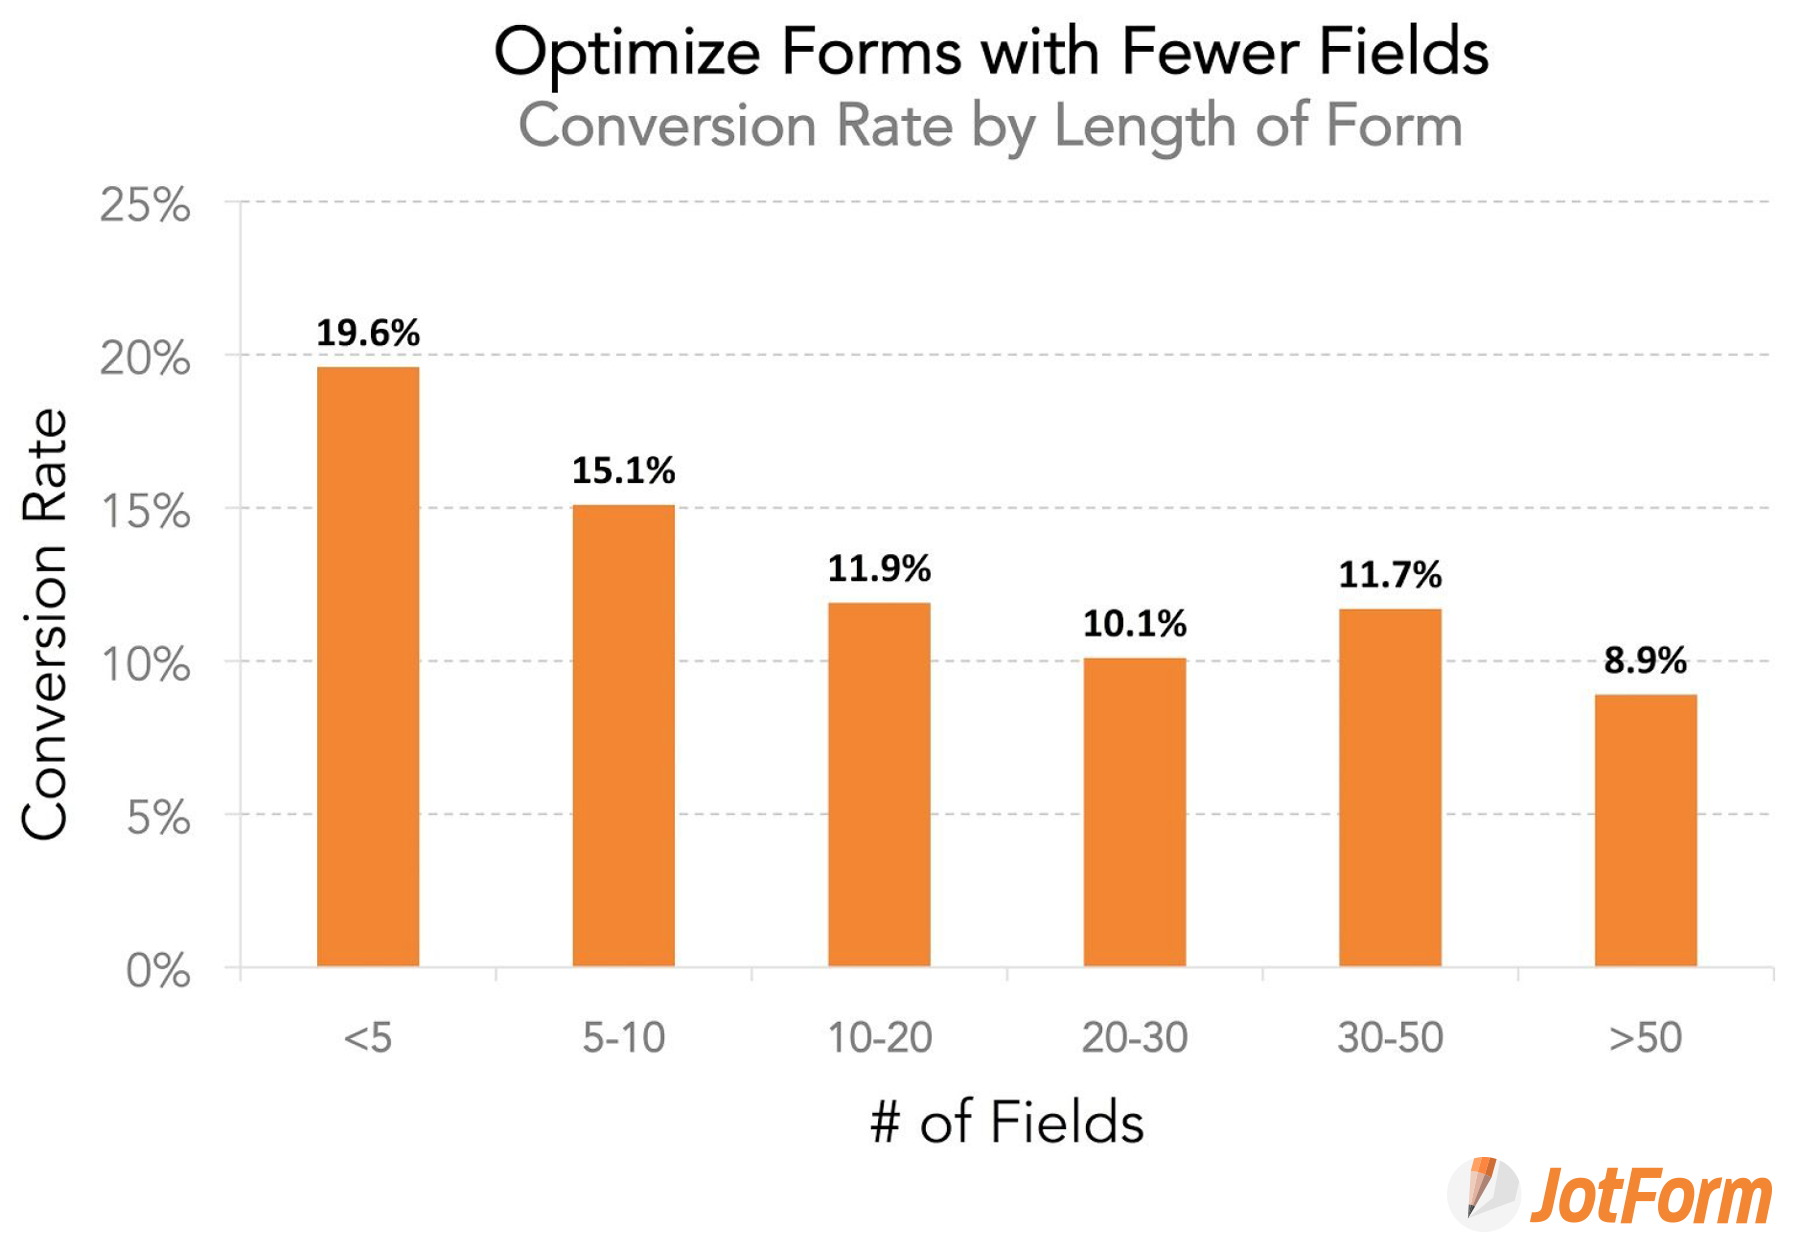 Form conversion rate by length